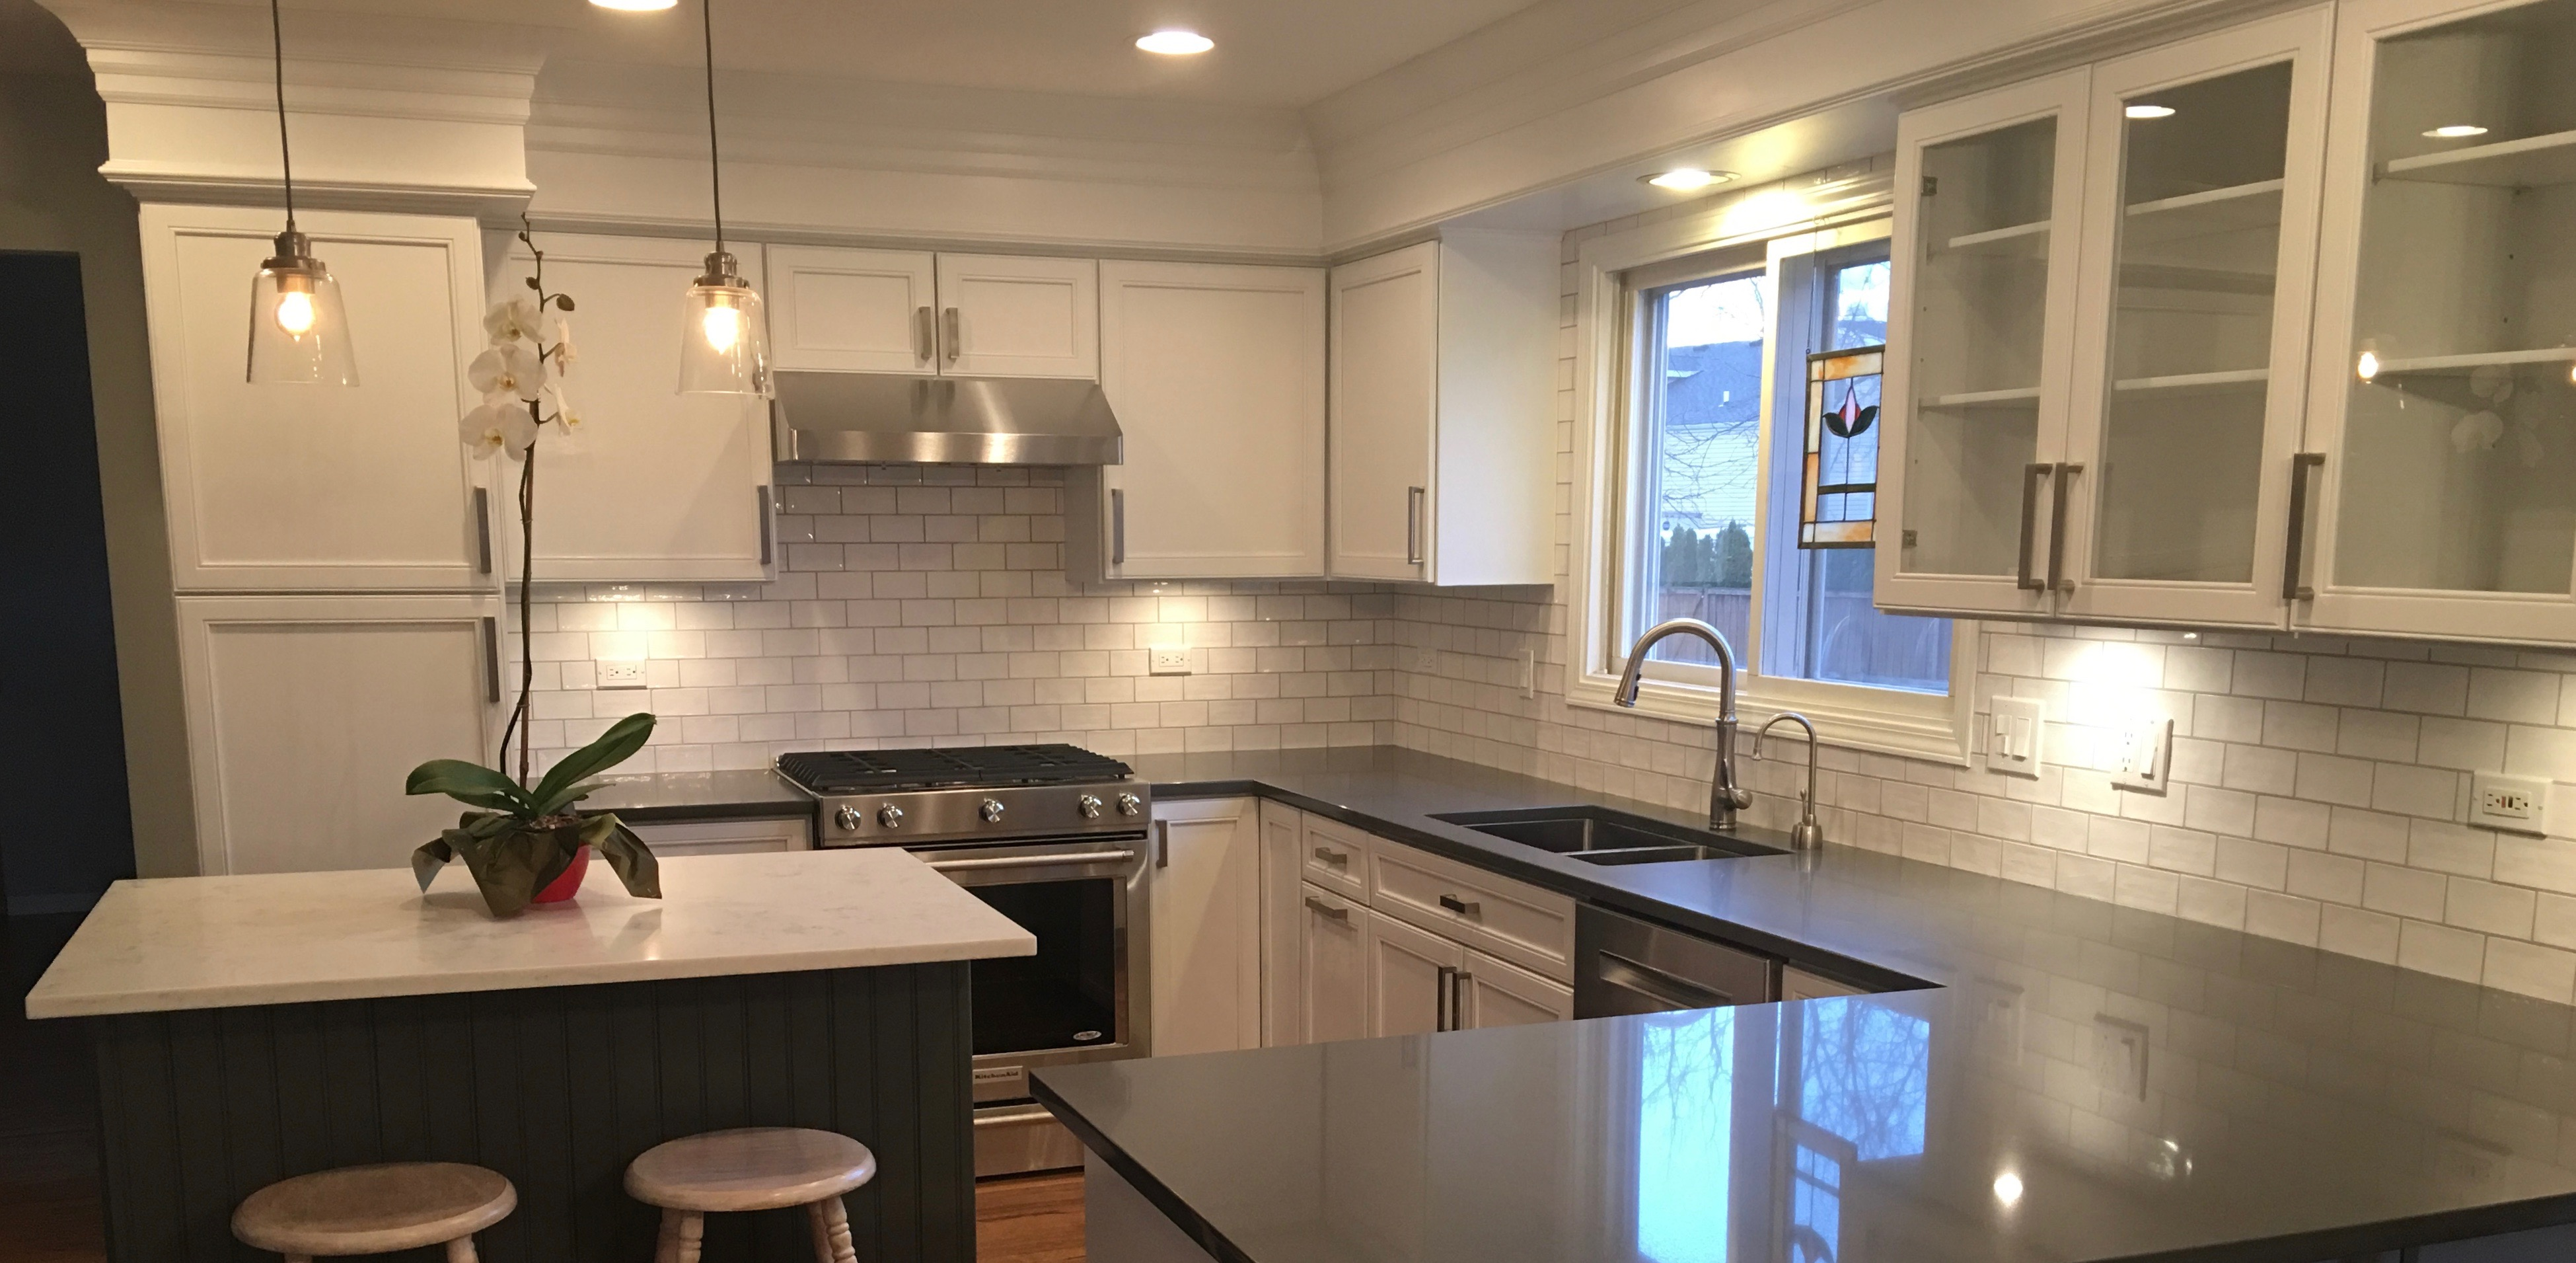 Kitchen Design Companies Chicago Ragsdale Inc Chicago Cabinet And Furniture Refinishing